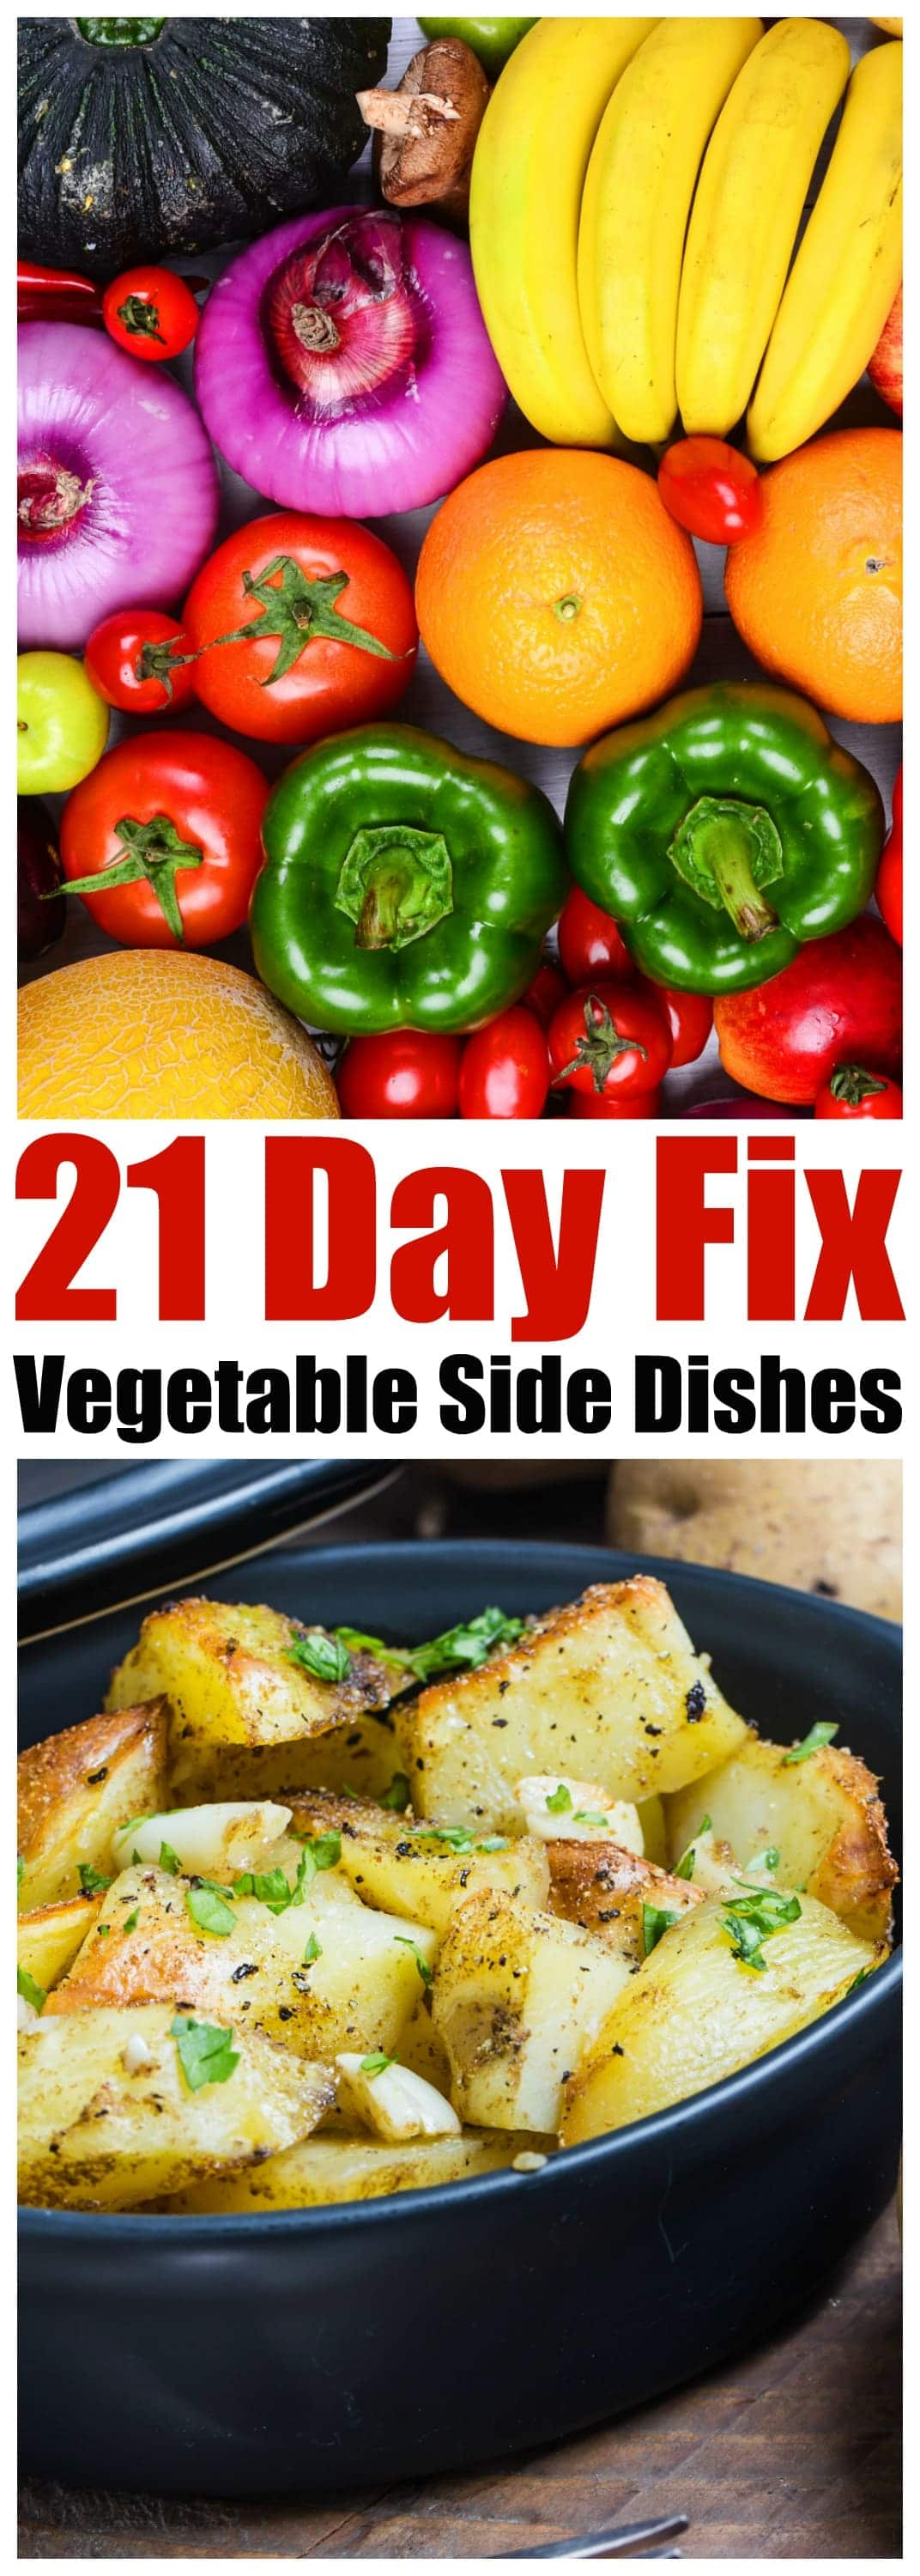 21 Day Fix Vegetable Side Dishes